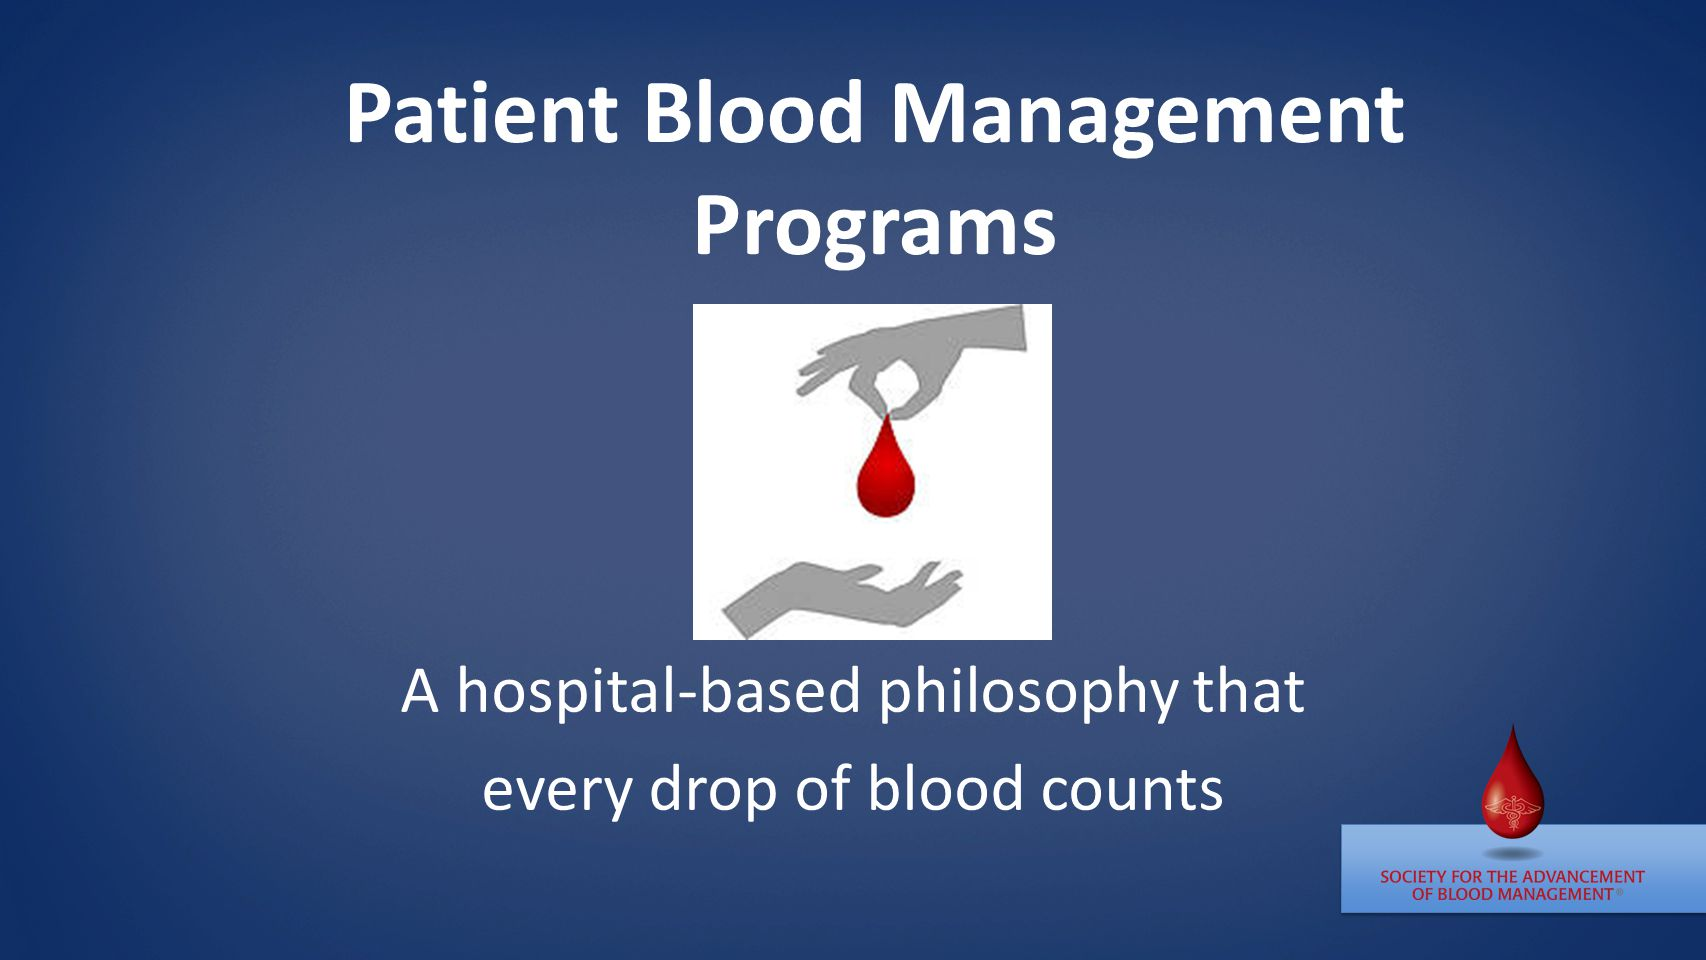 Patient Blood Management Programs A hospital-based philosophy that every drop of blood counts